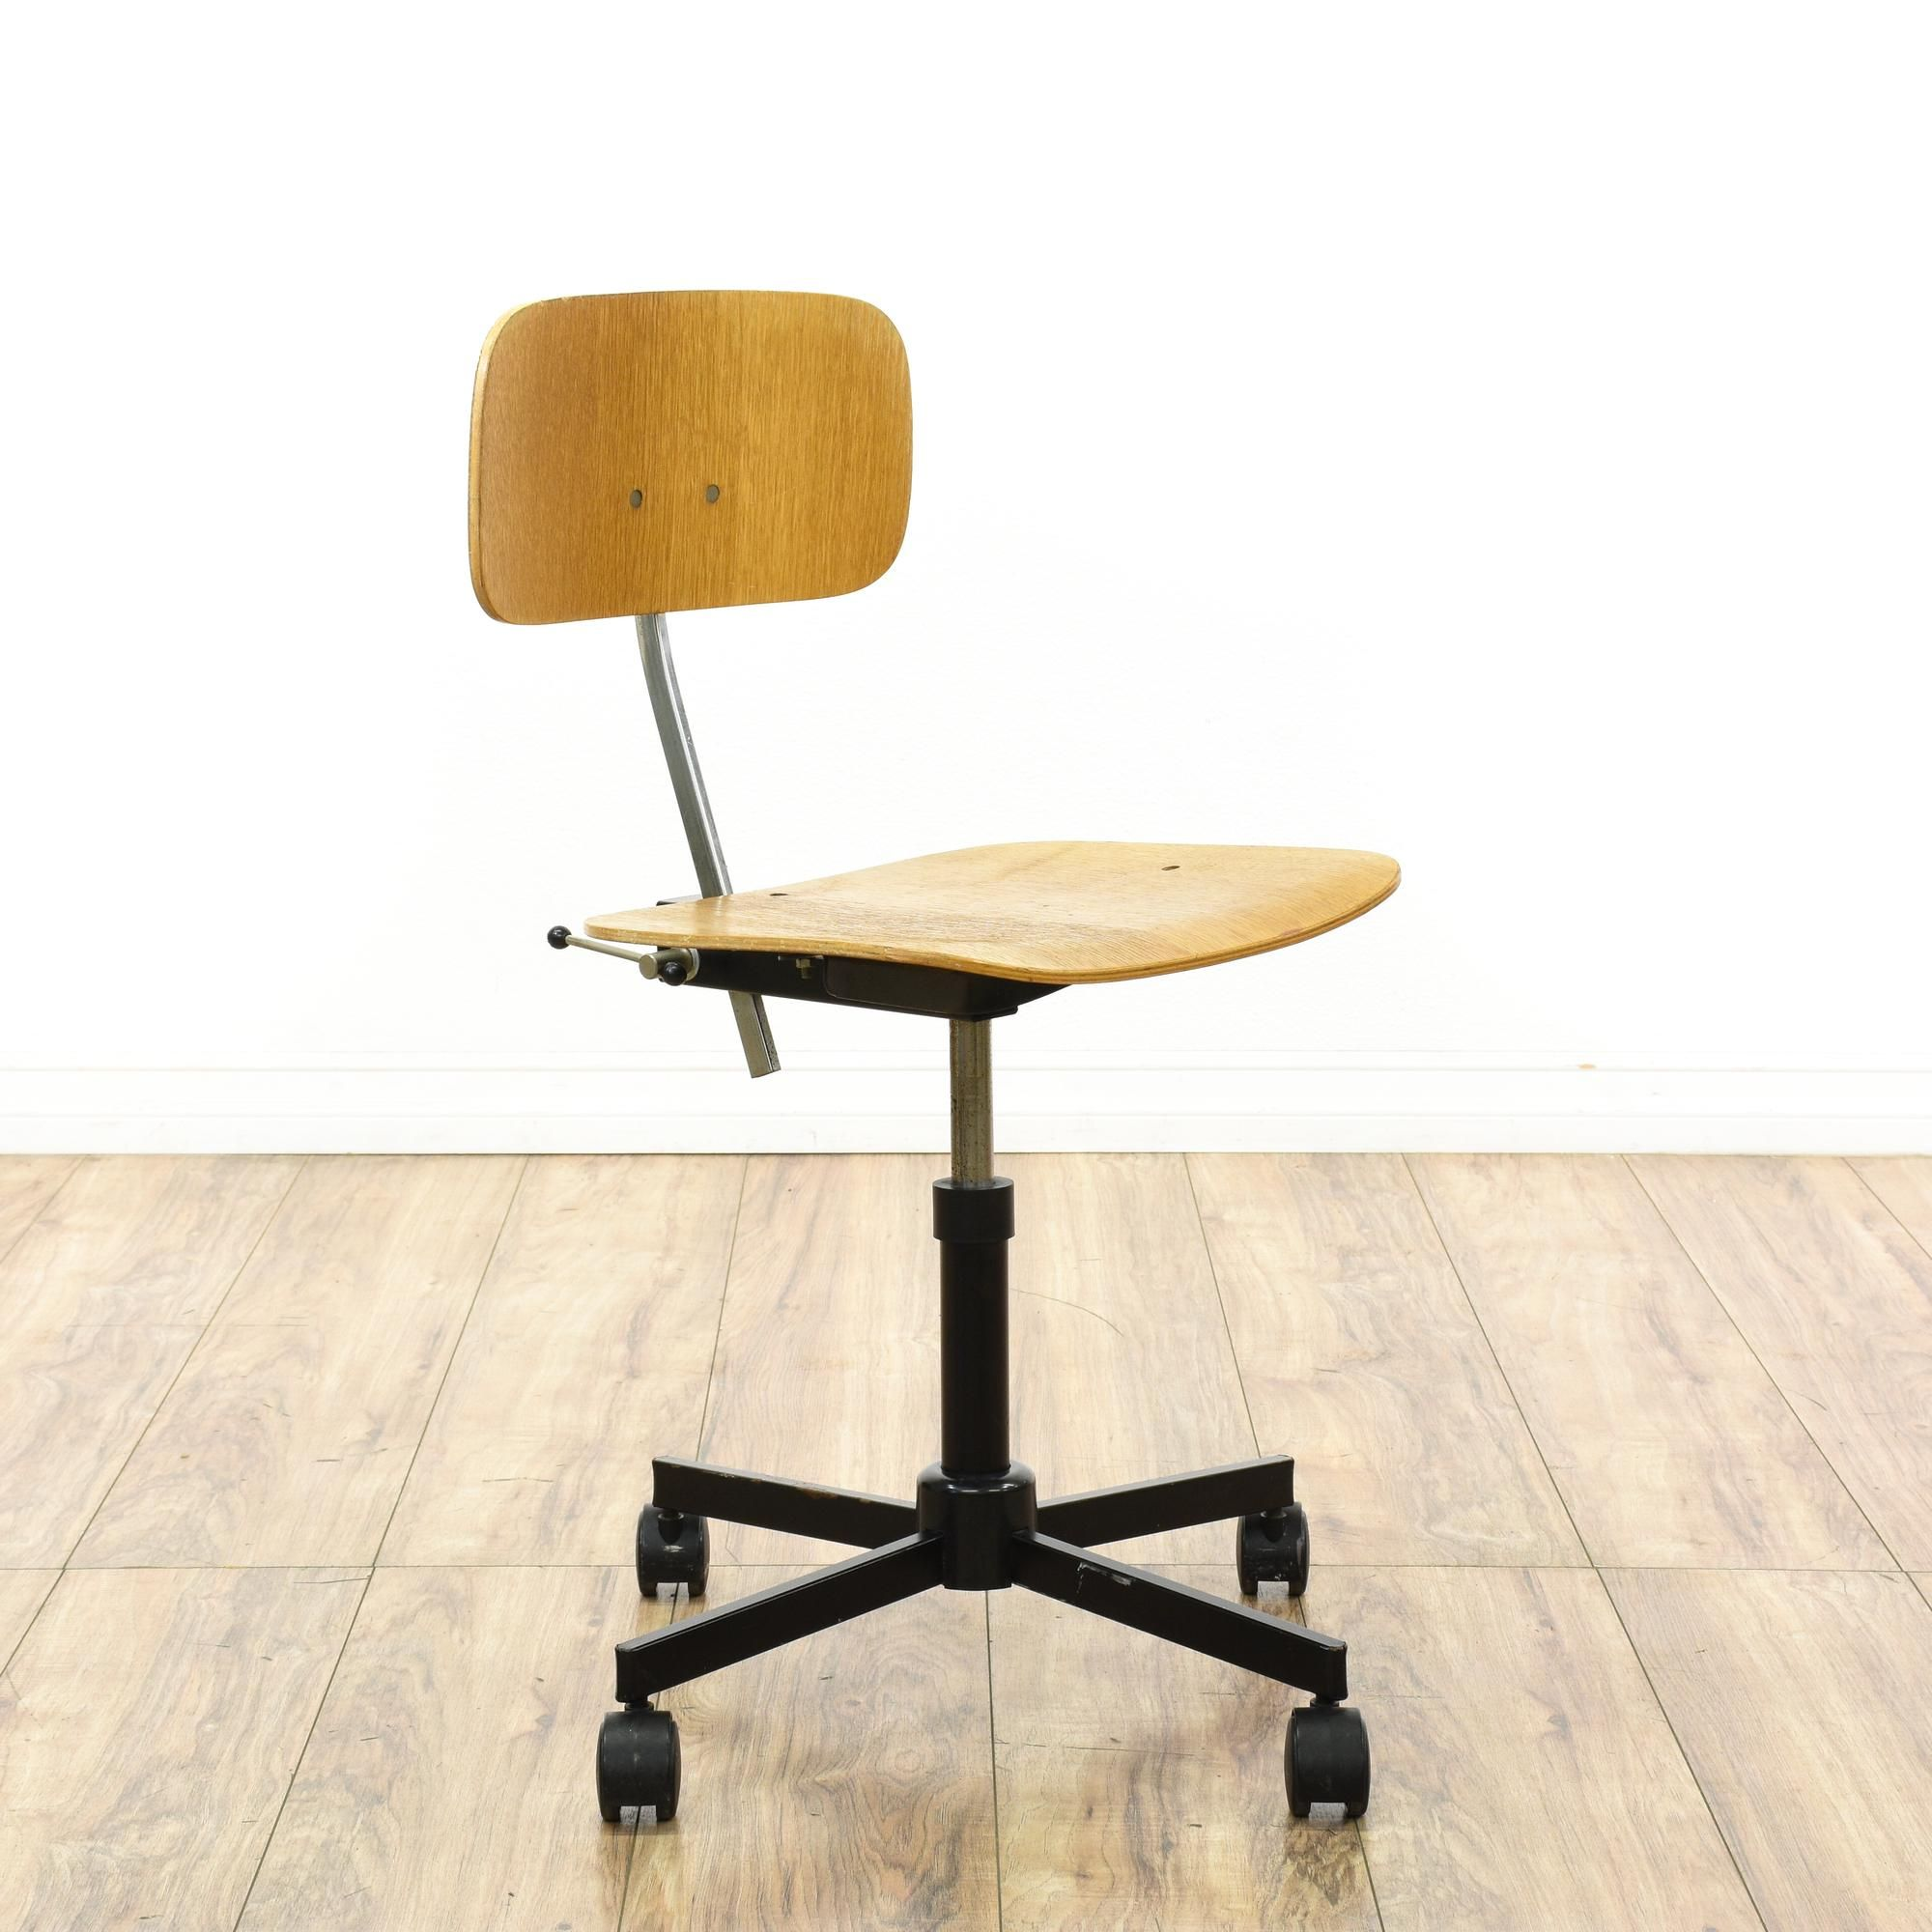 This Mid Century Modern Desk Chair Is Featured In A Molded Plywood With A Glossy Maple Finish This Retro Mid Century Modern Desk Chair Modern Desk Chair Chair